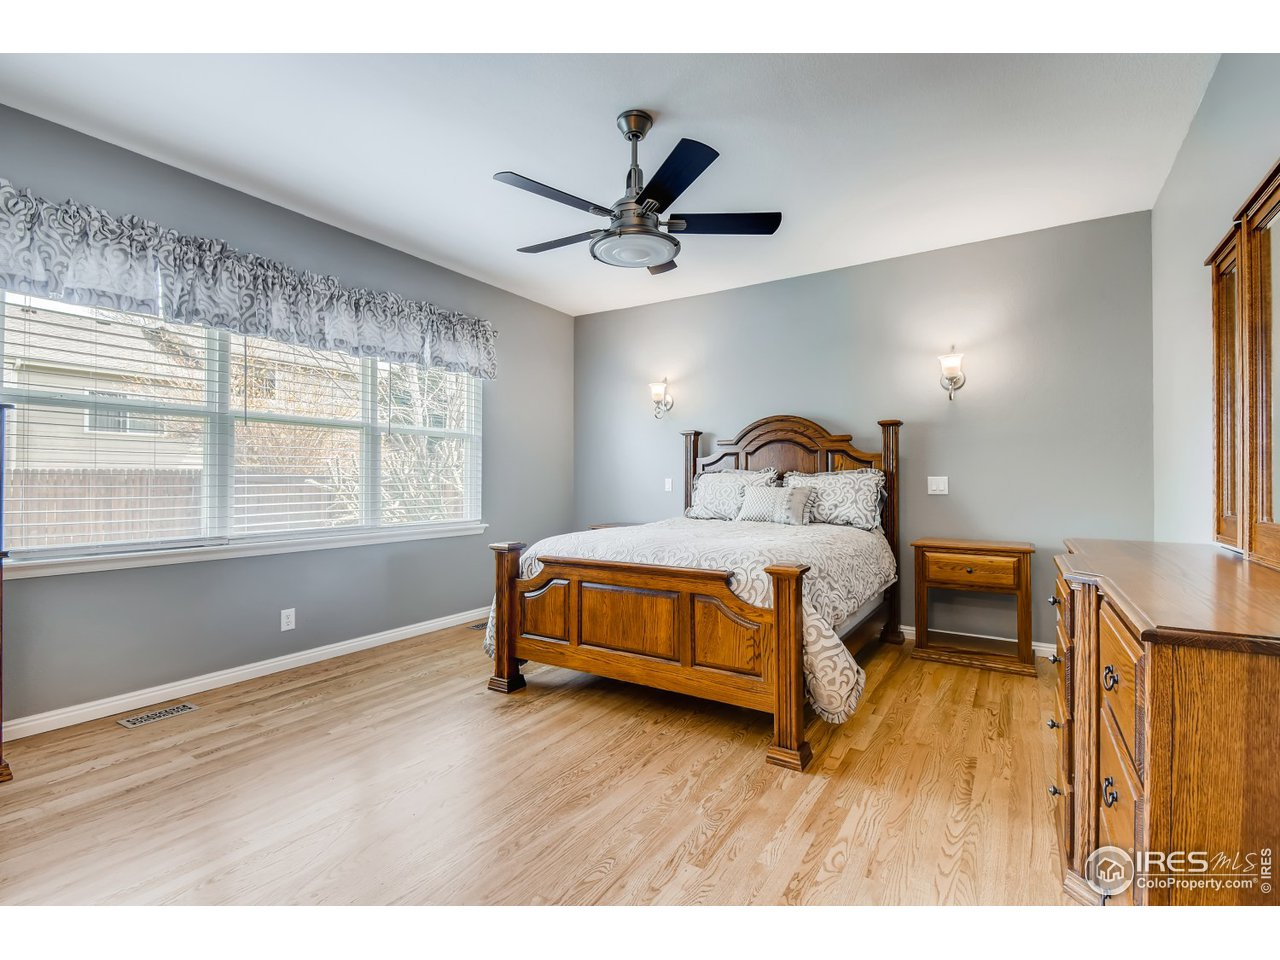 Family room has built-in cab and TV mount stays. Gas plug is present, you could install a gas FP. Newly refin wood floors.